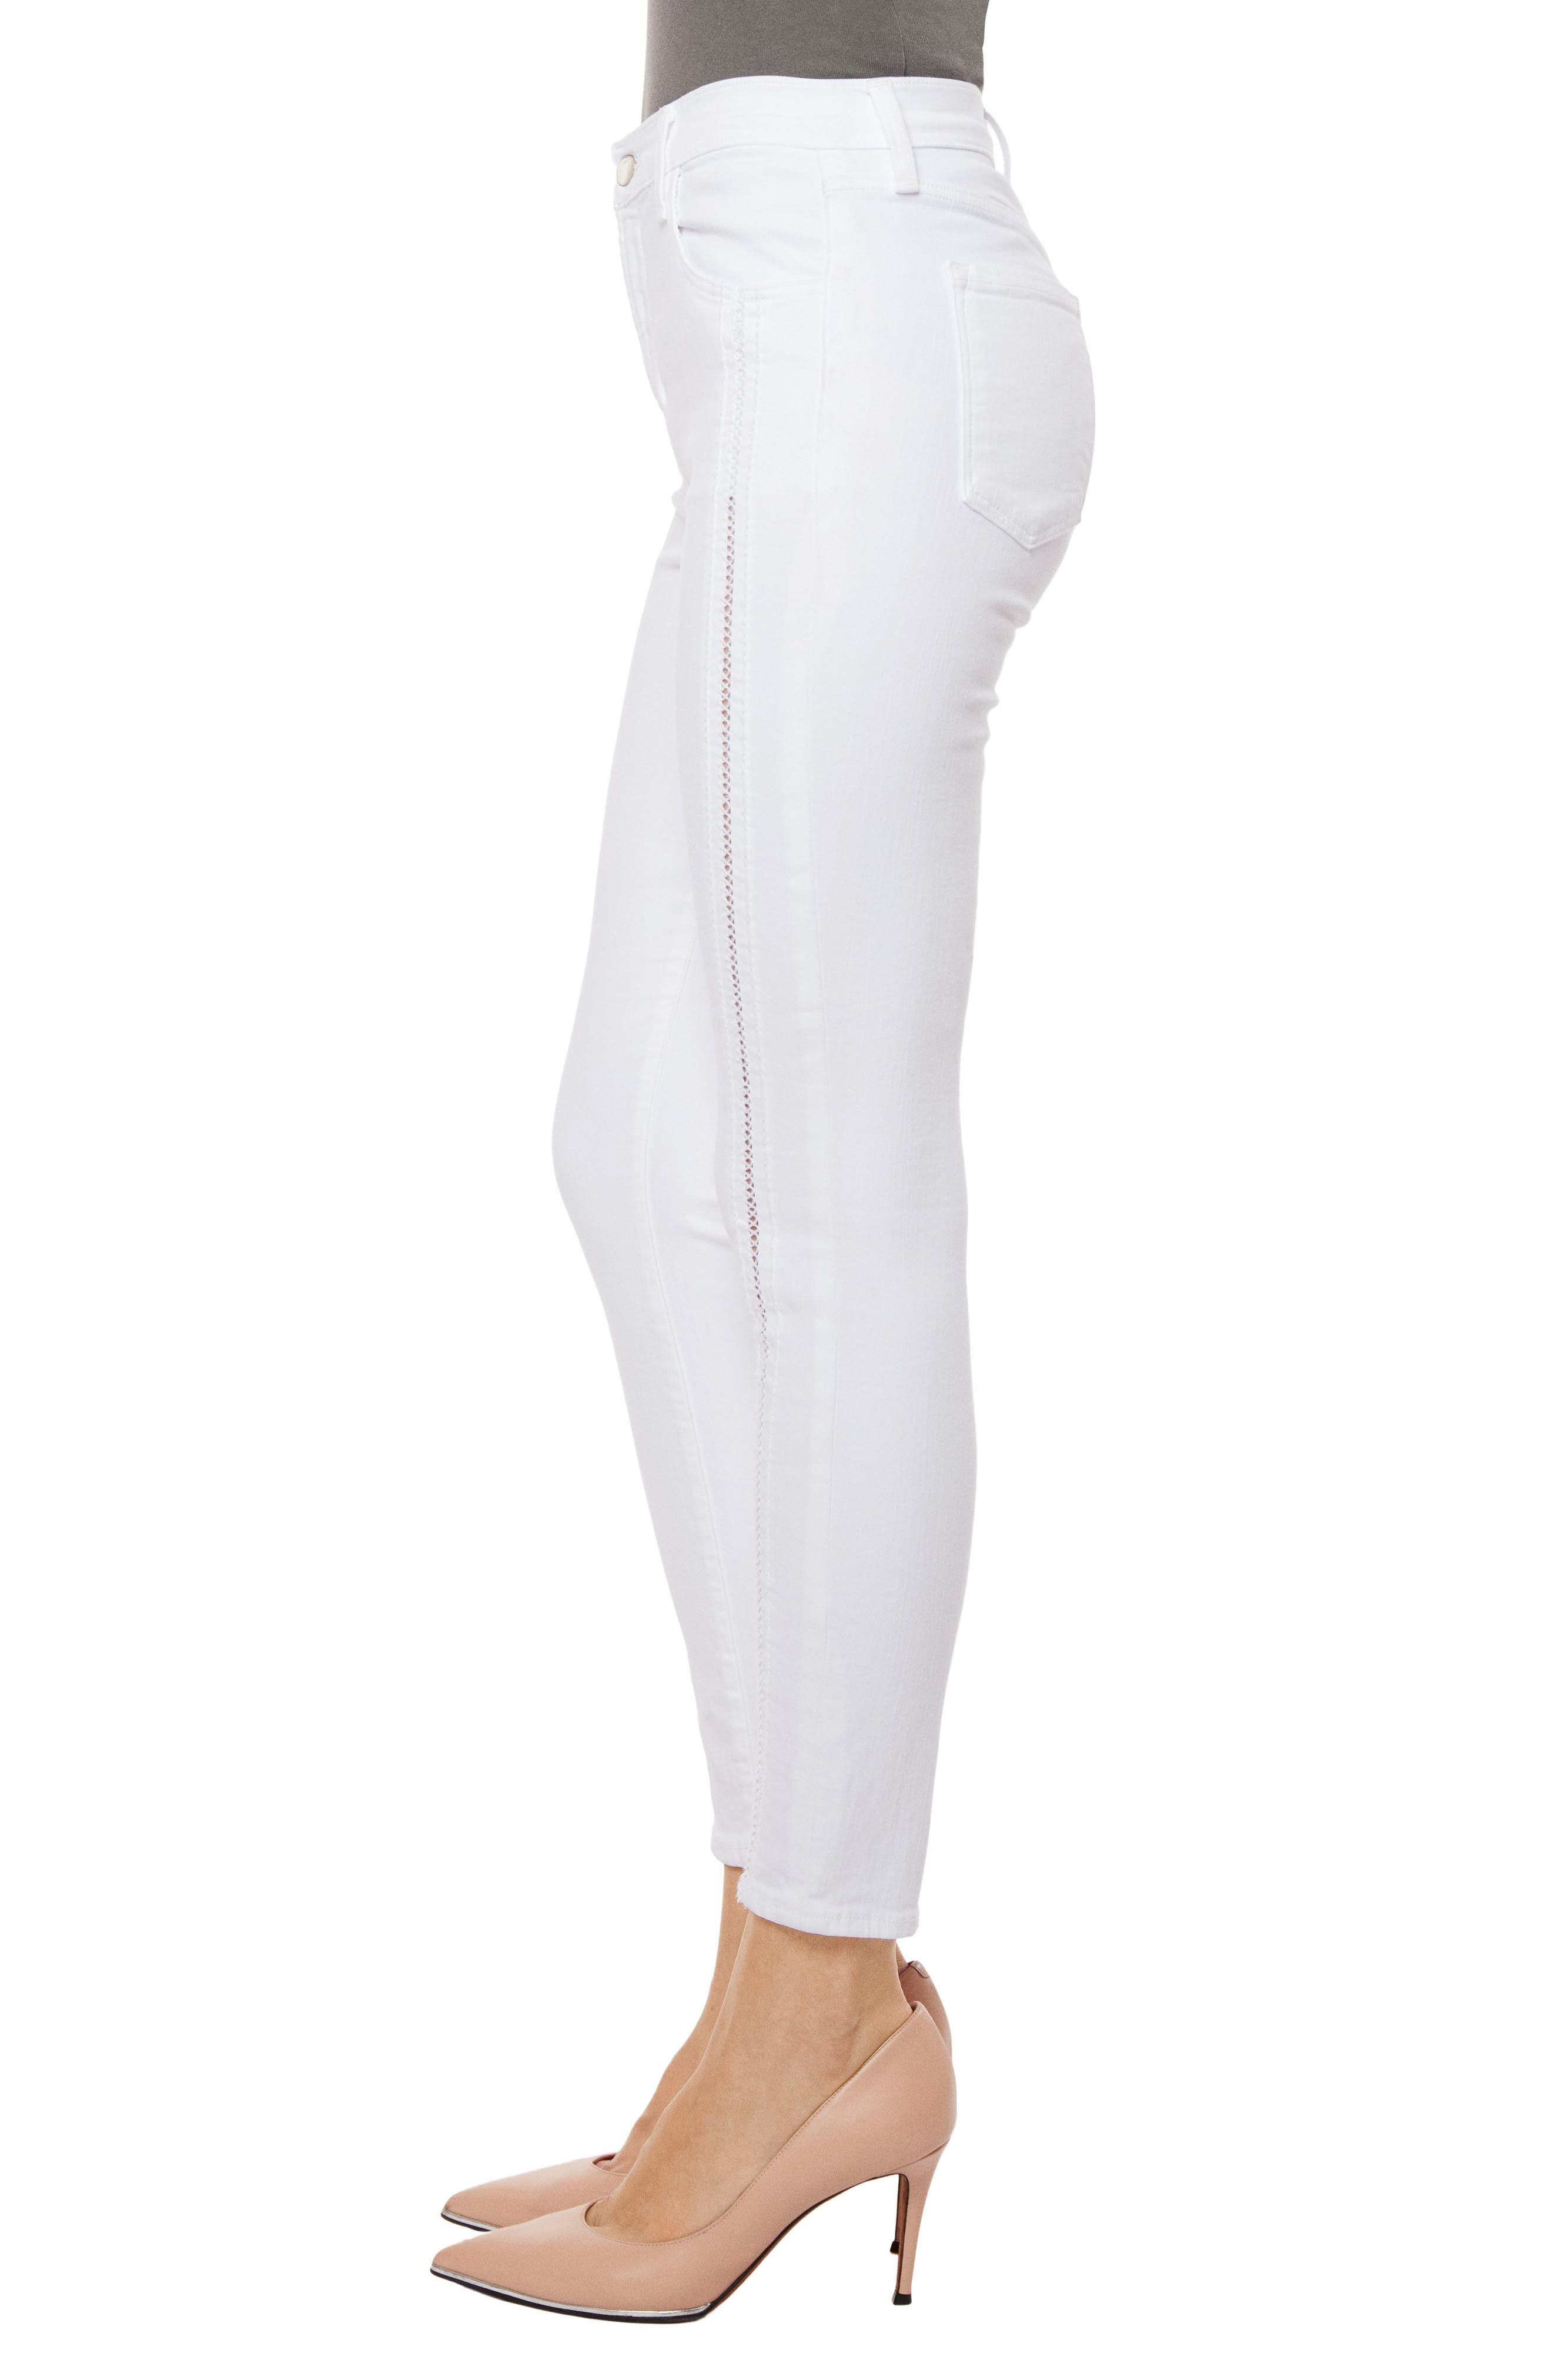 Alana High Waist Crop Skinny Jeans,                             Alternate thumbnail 4, color,                             White Ladder Lace